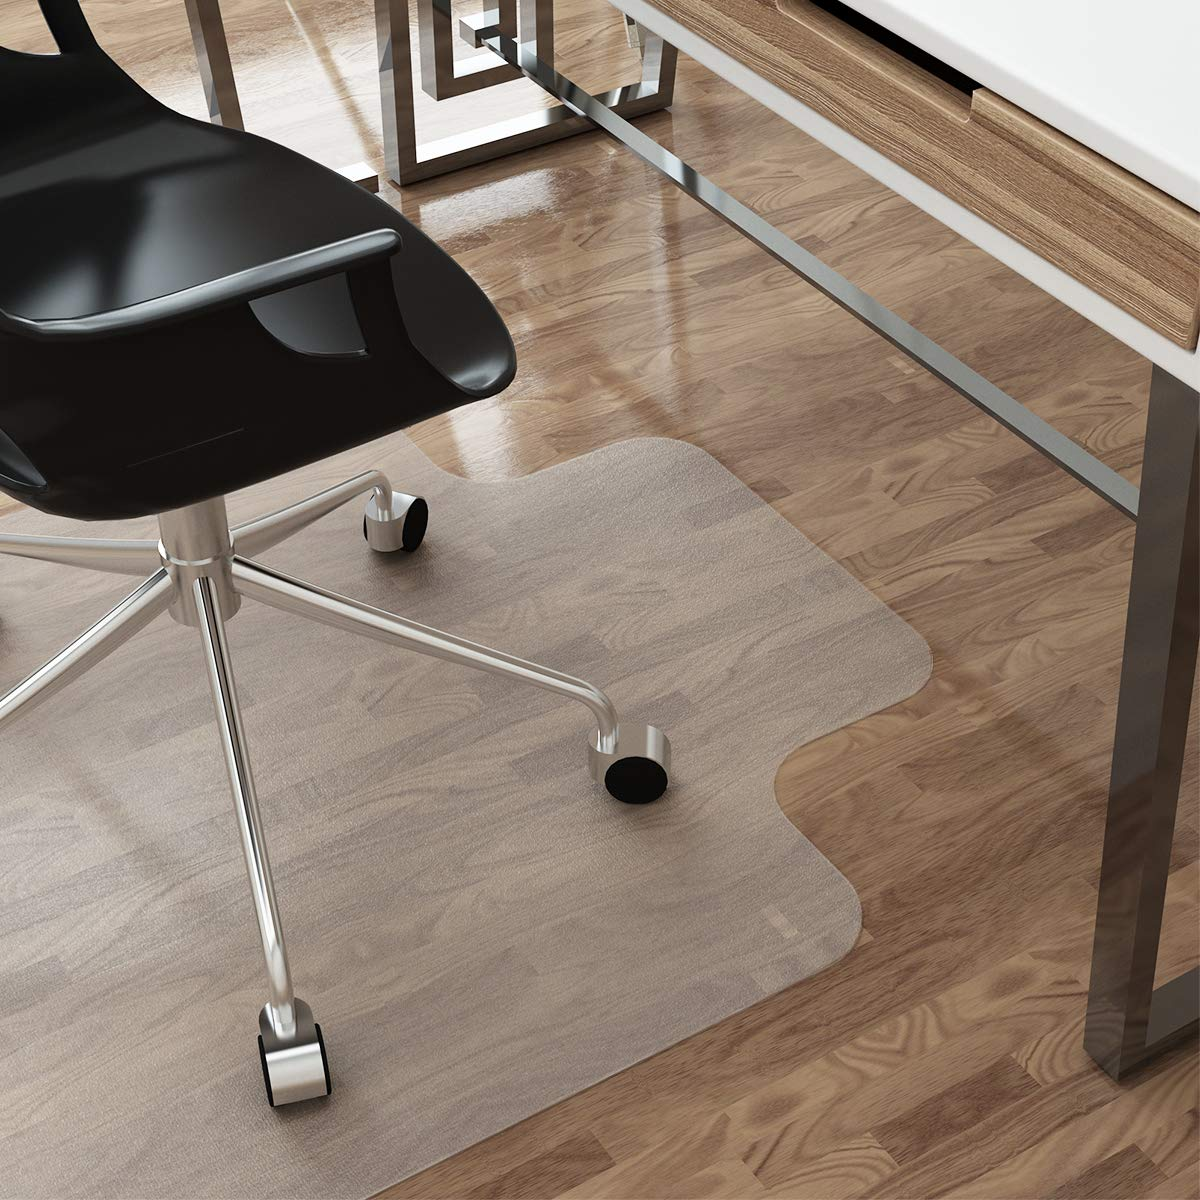 LANGRIA Large Office Desk Chair Mat with Lip for Hardwood Floors, 48'' x 36'' Clear Hard Floor Protector with Non-Studded Bottom, Eco-Friendly PVC Material BPA Free for Home and Office